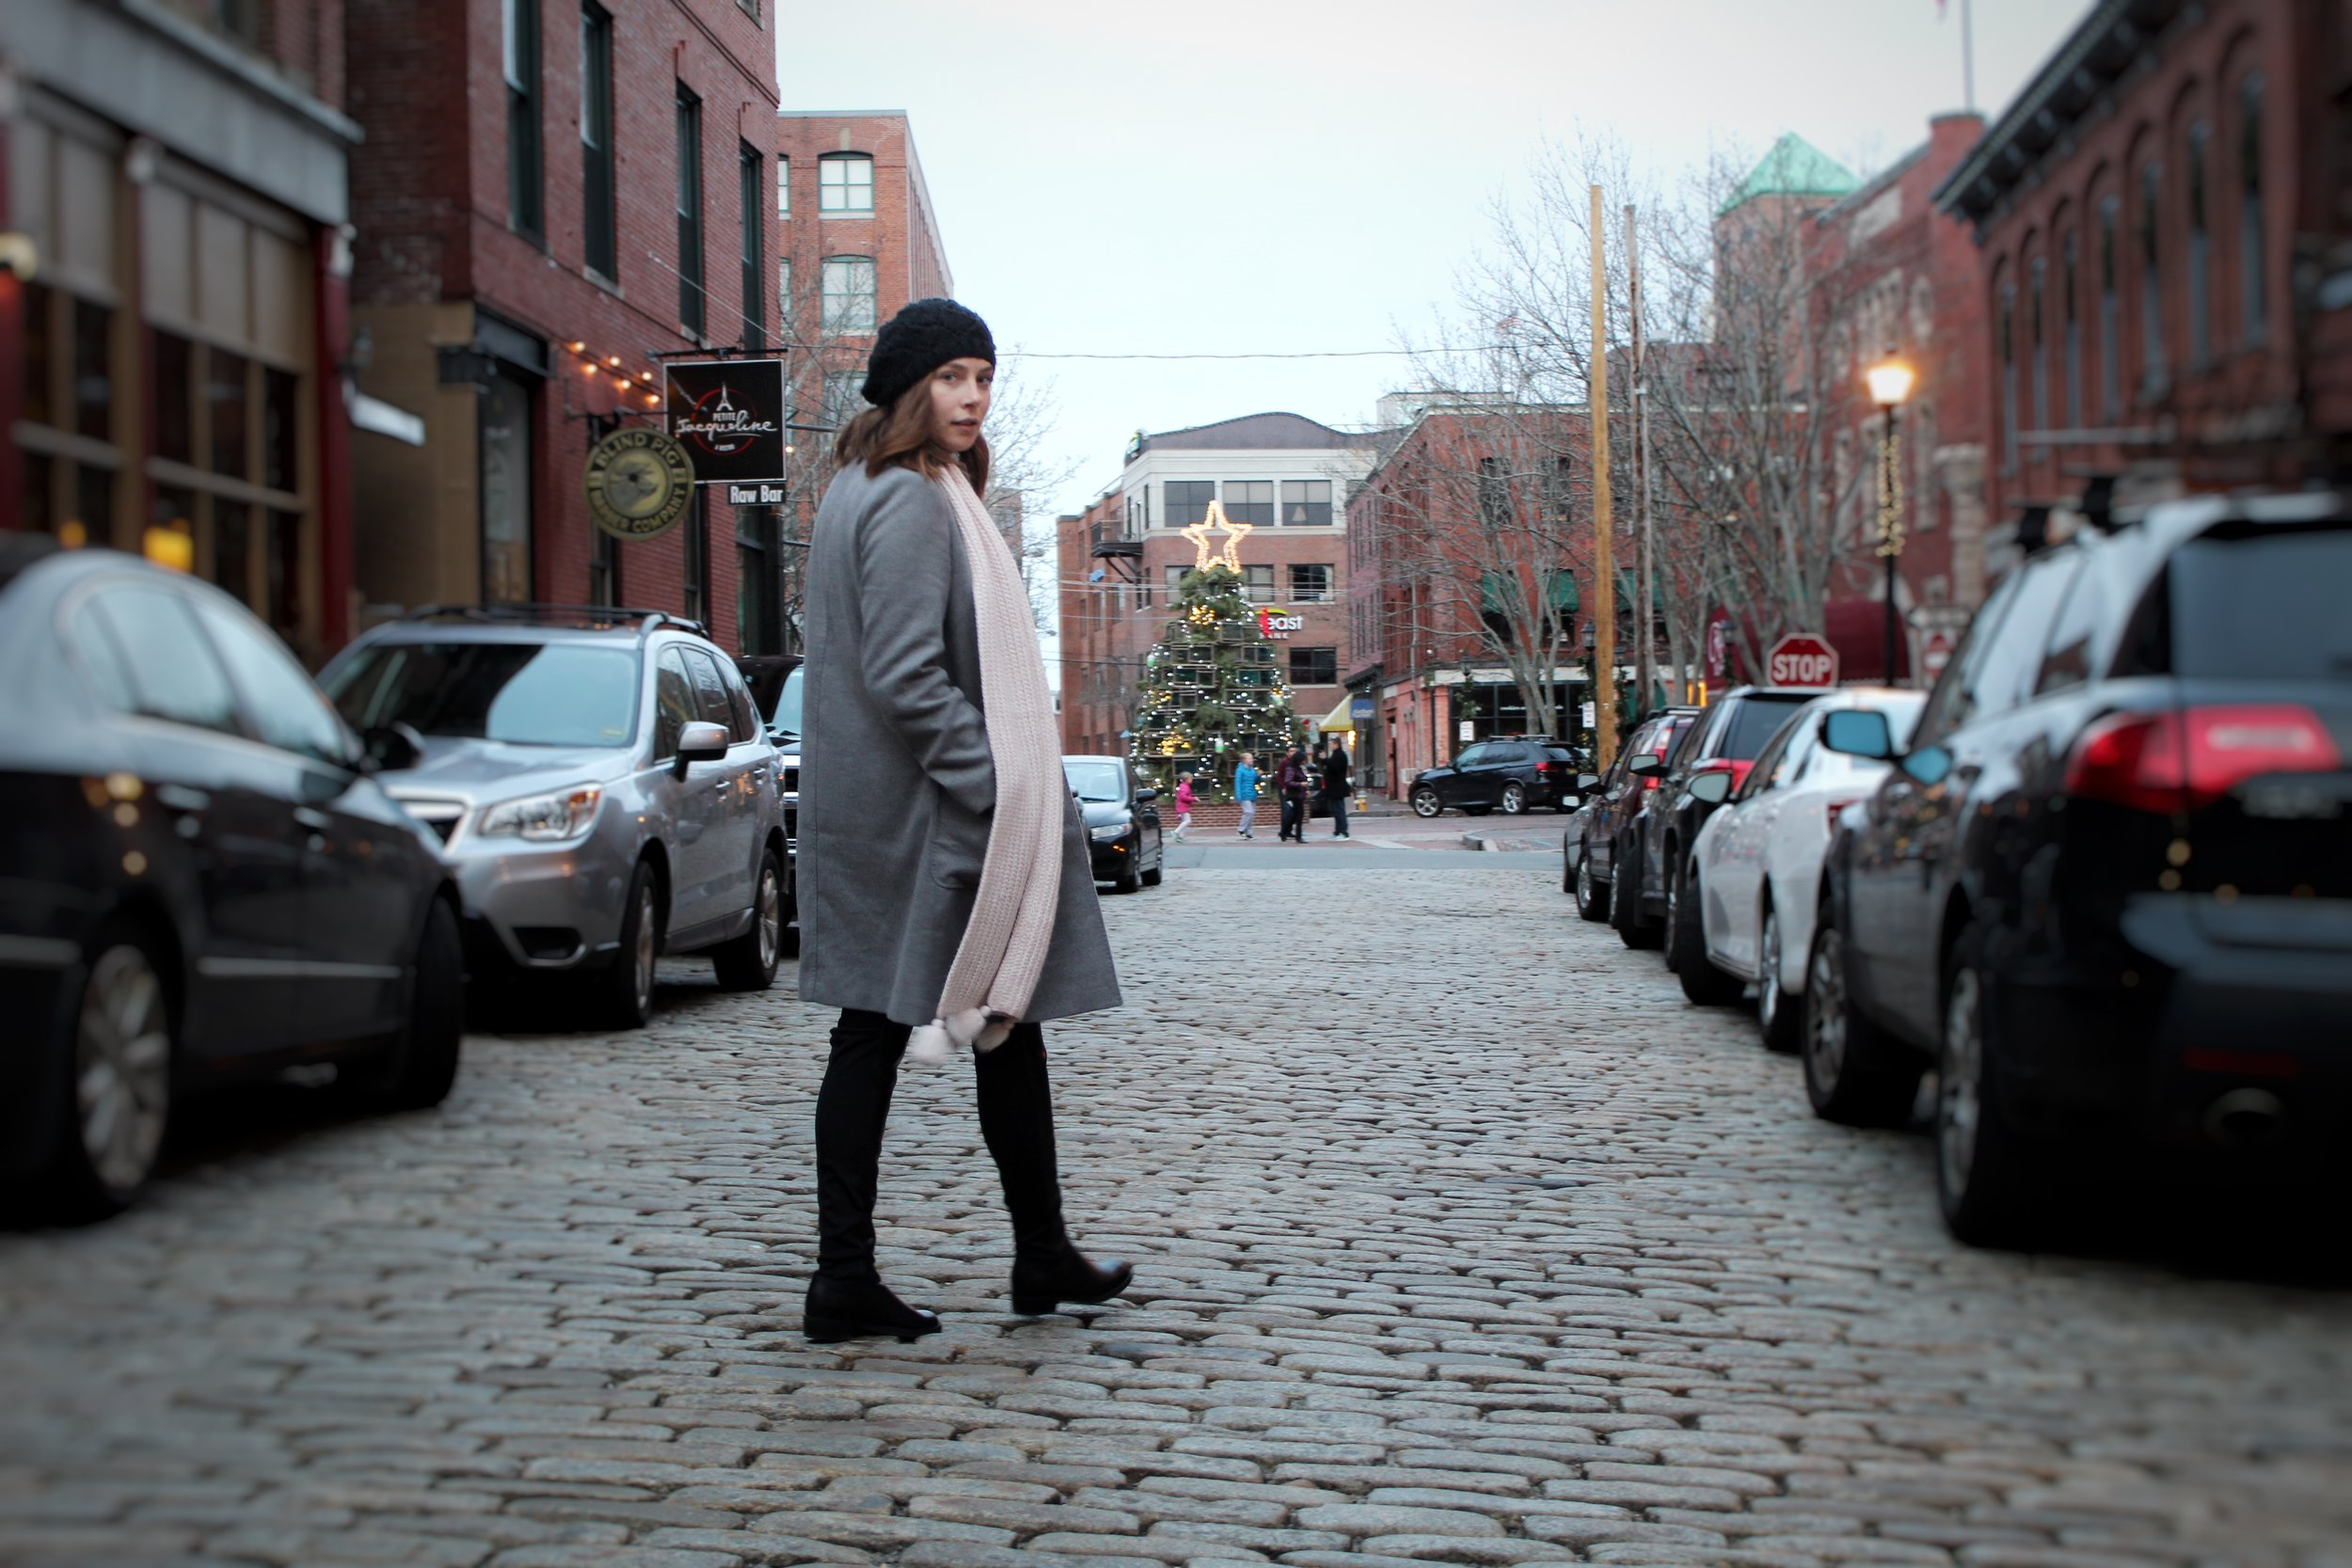 The old cobblestone streets make the Old Port neighborhood that much more charming! Be sure to pack comfortable, flat shoes though :)